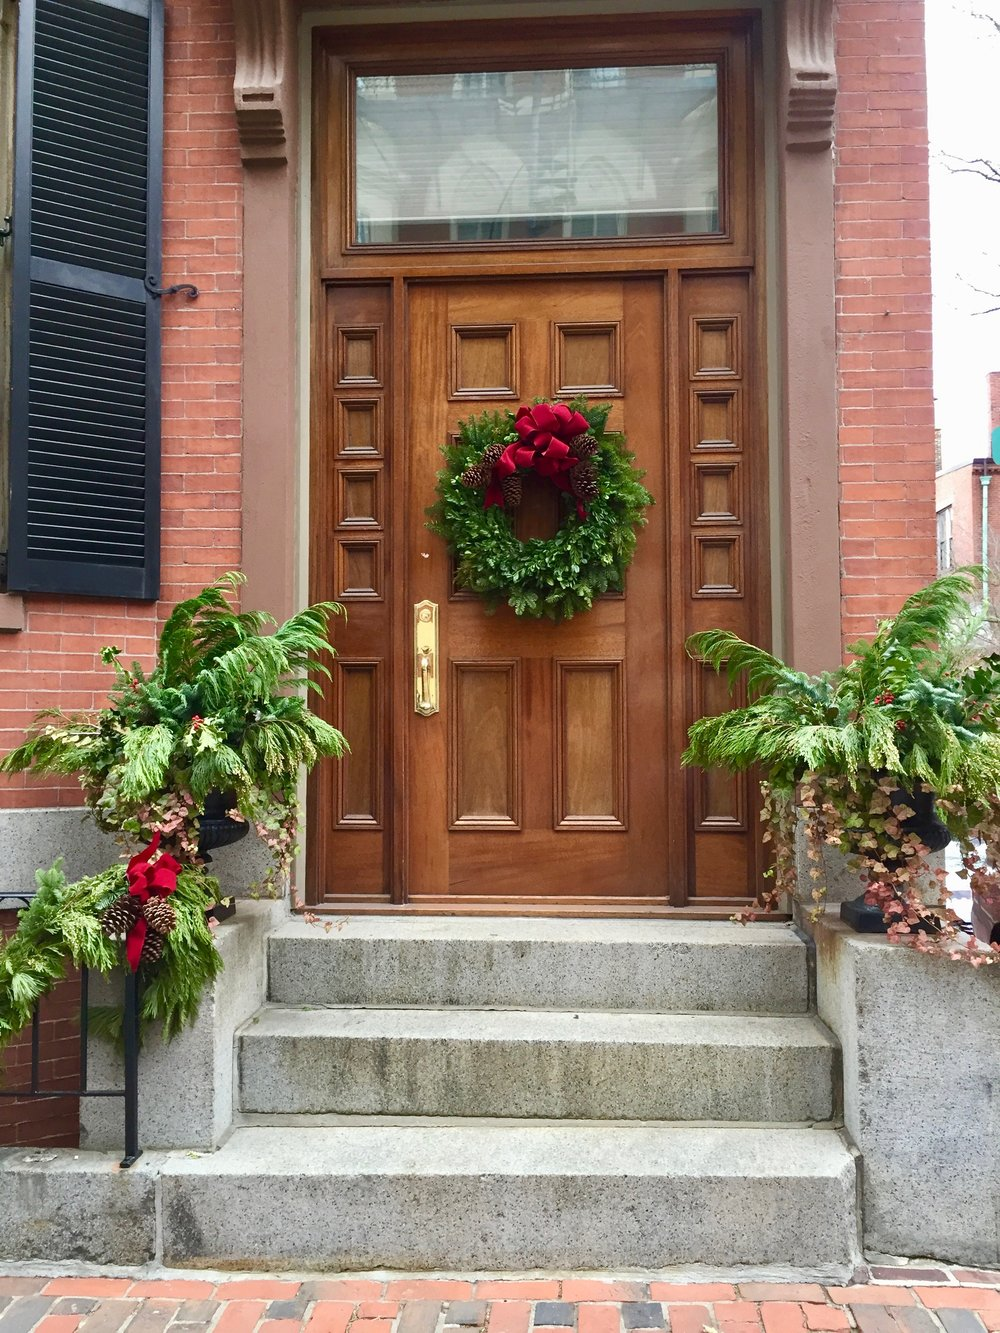 Christmas door beacon hill boston .jpg